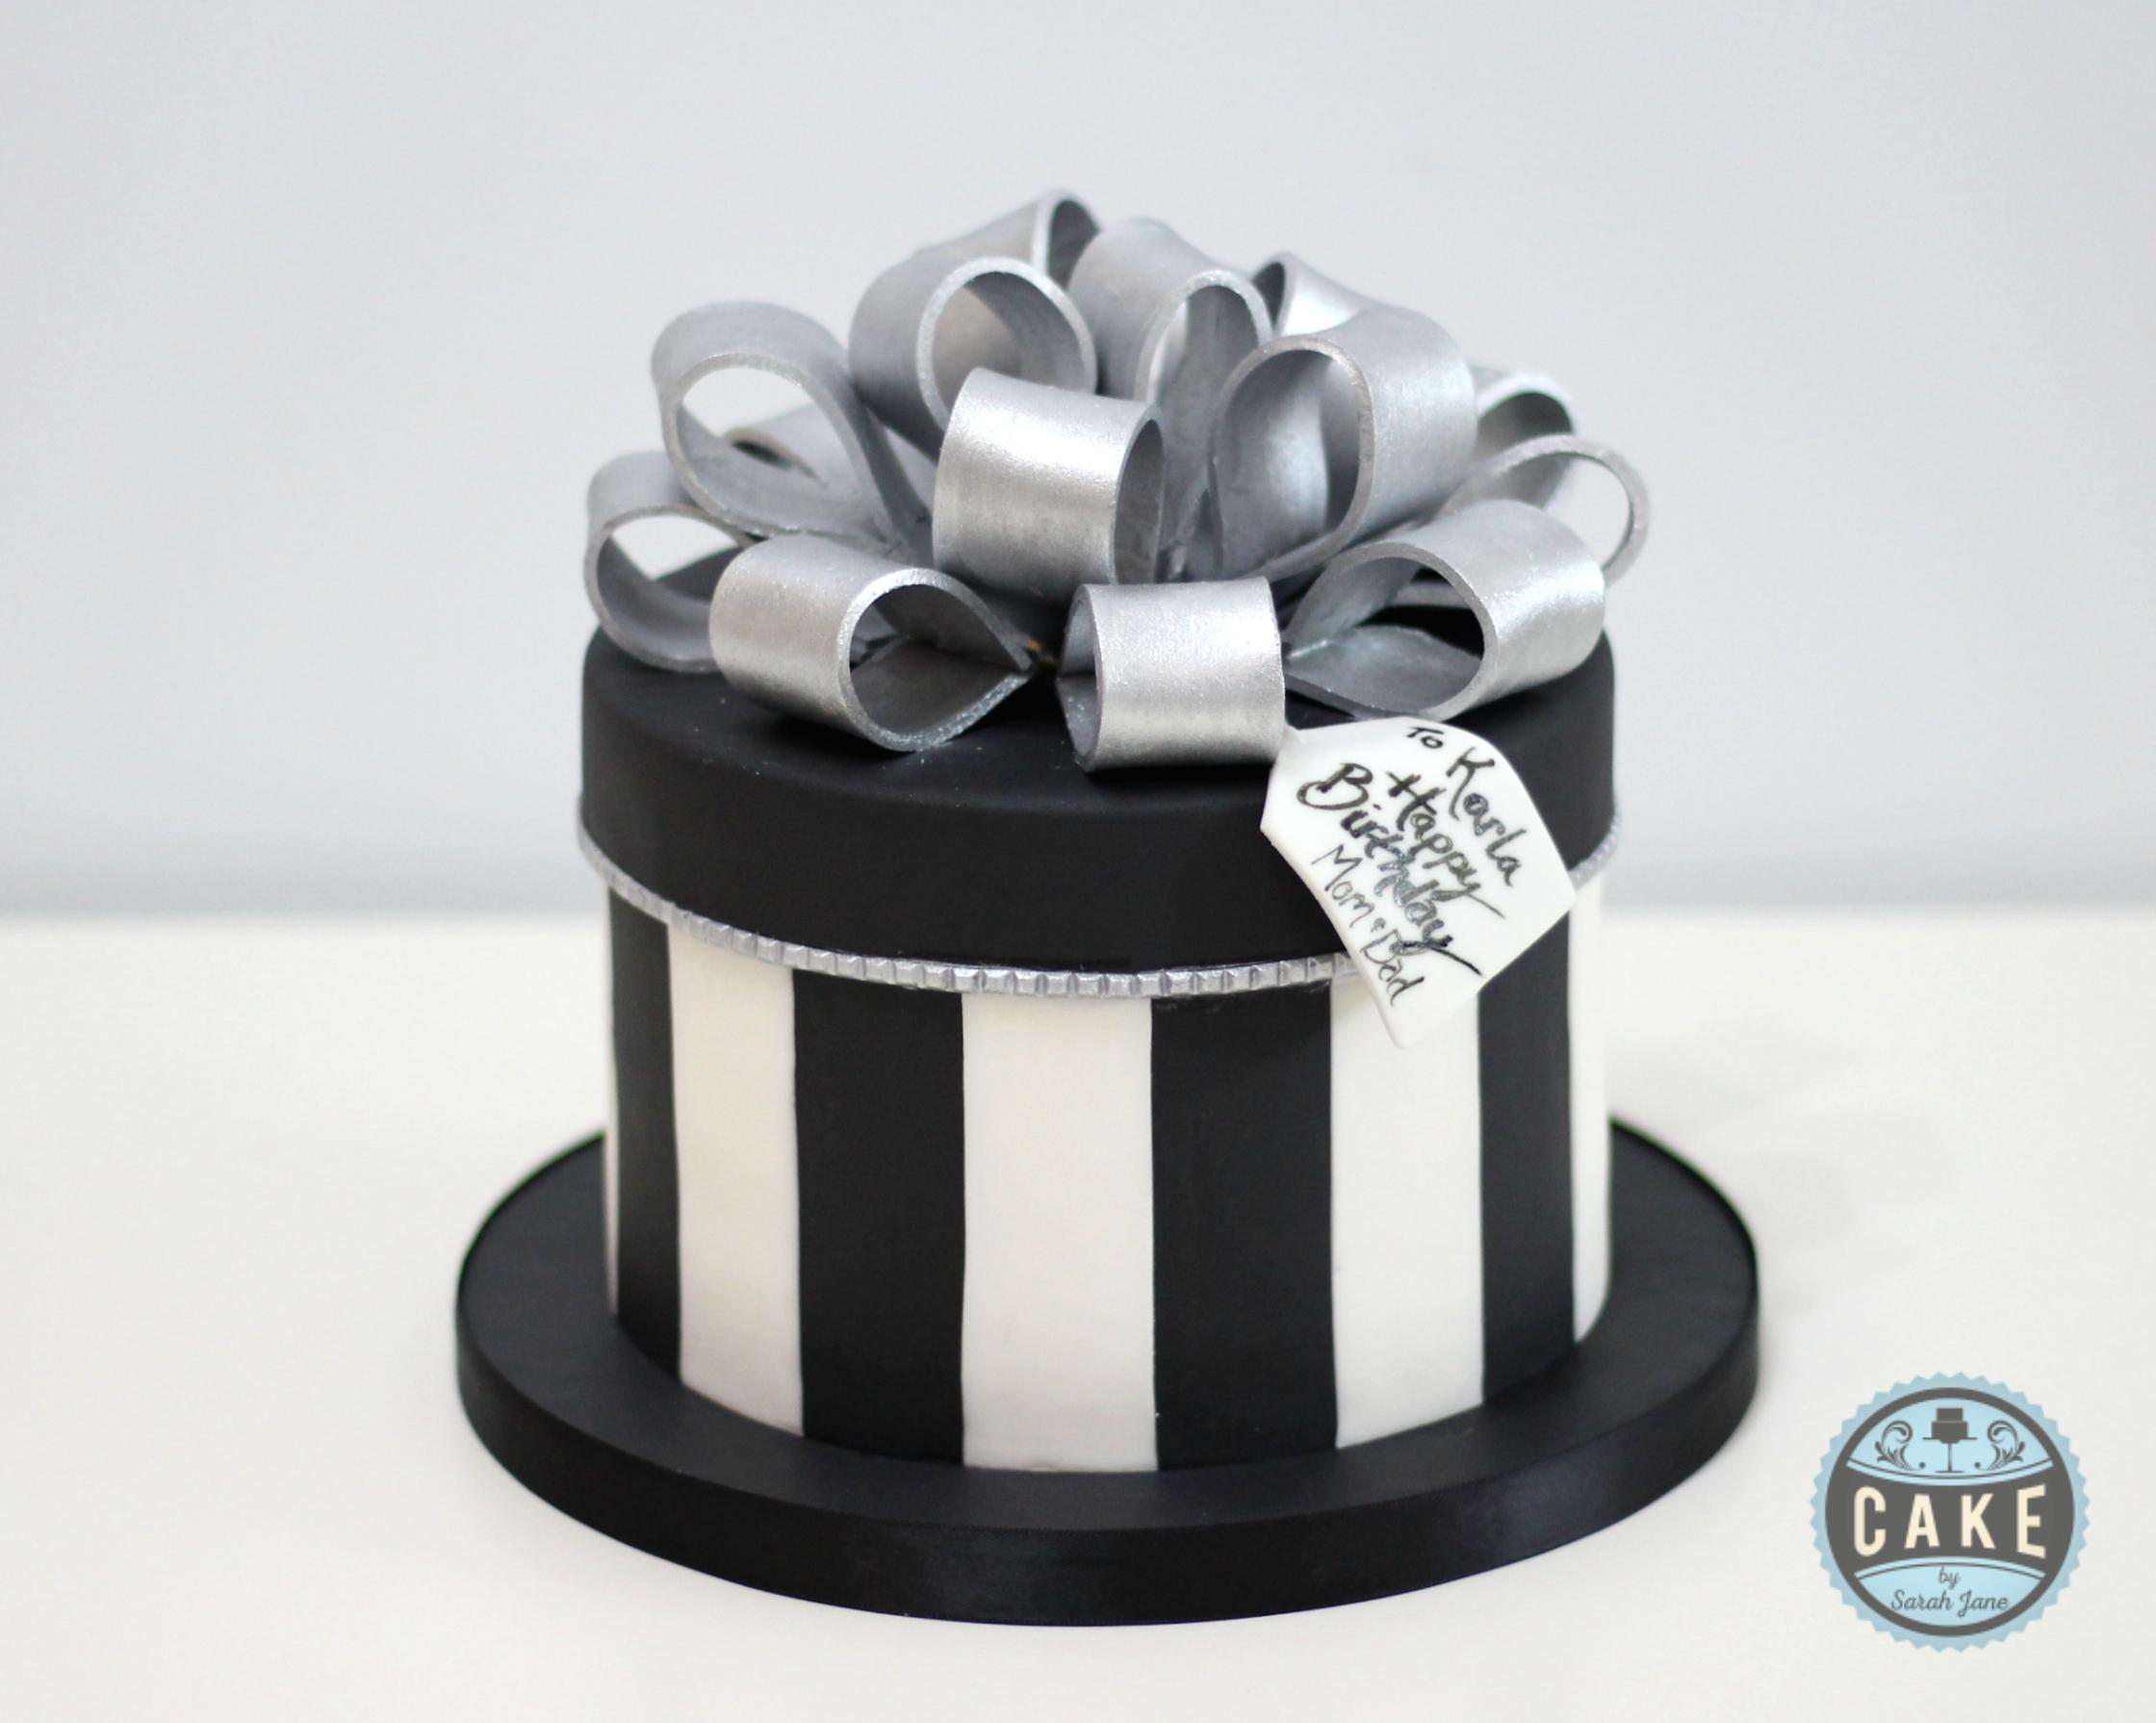 Gift Box Black and White Cake Silver Bow